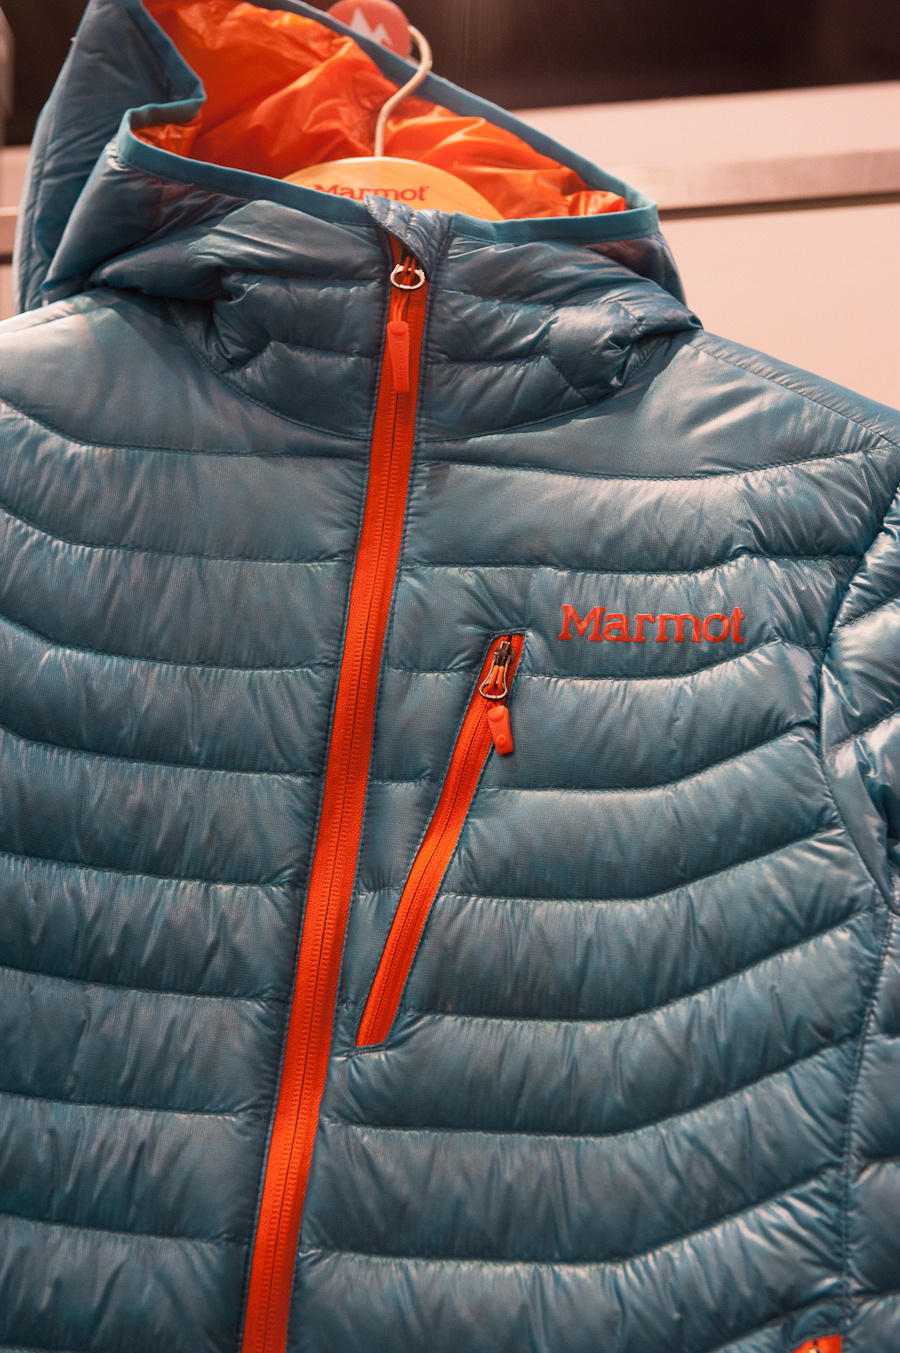 The Quasar Hoody from Marmot is a great down jacket with a built in hood. It has 900 fill down, and can stand up to the coldest of days.